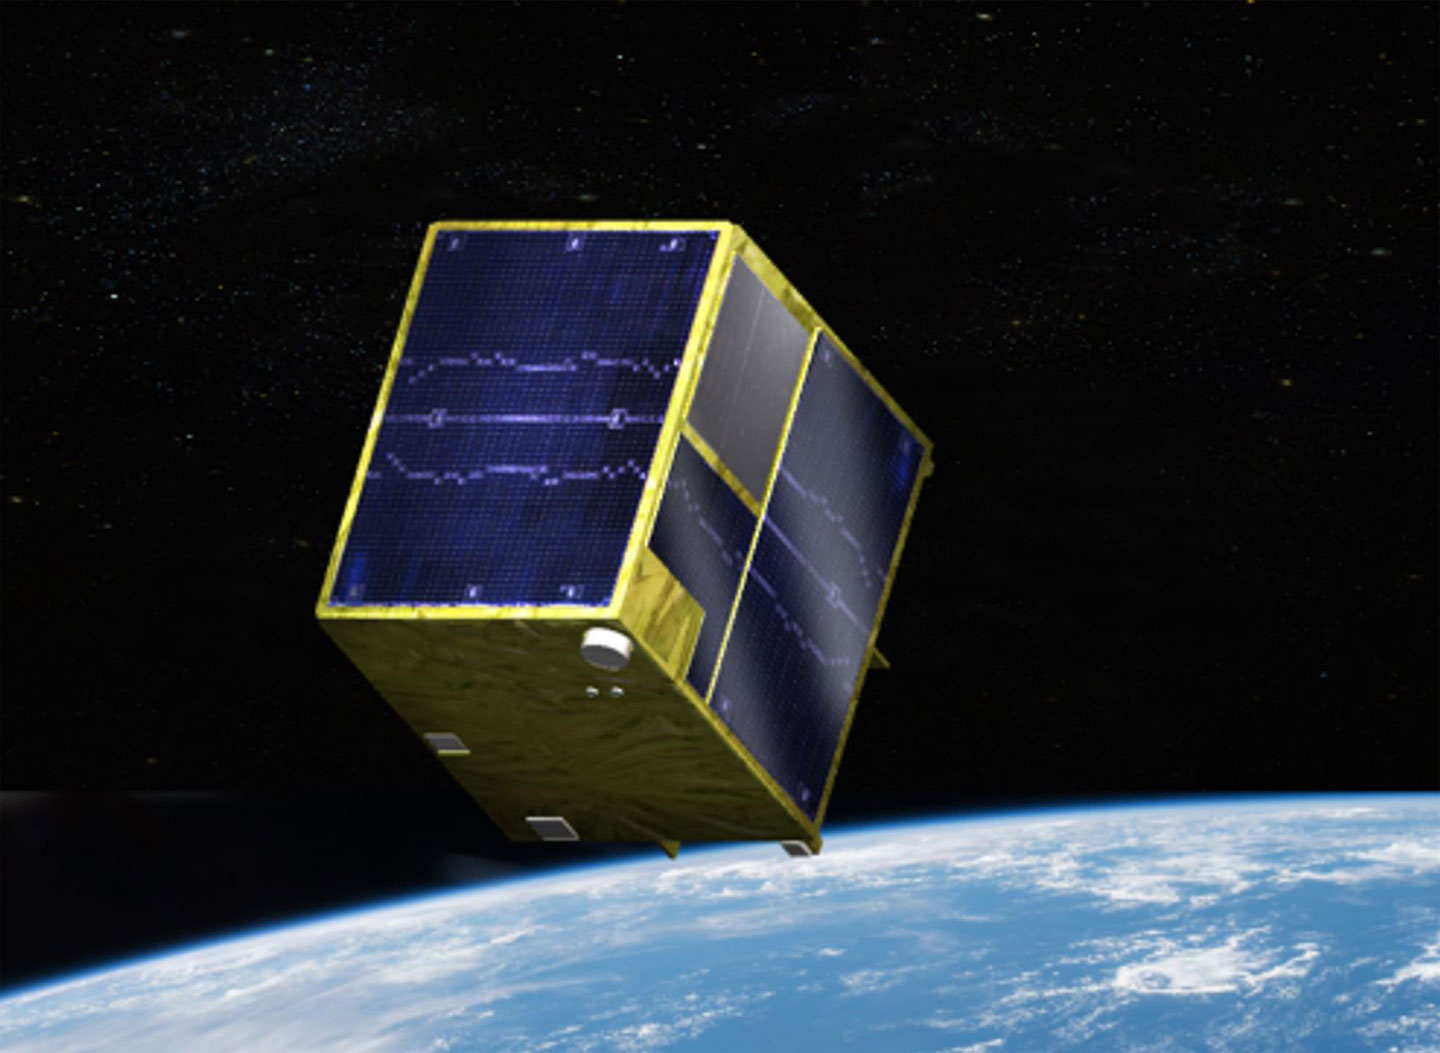 Rendition of the new satellite for Innovative Satellite Technology Demonstration